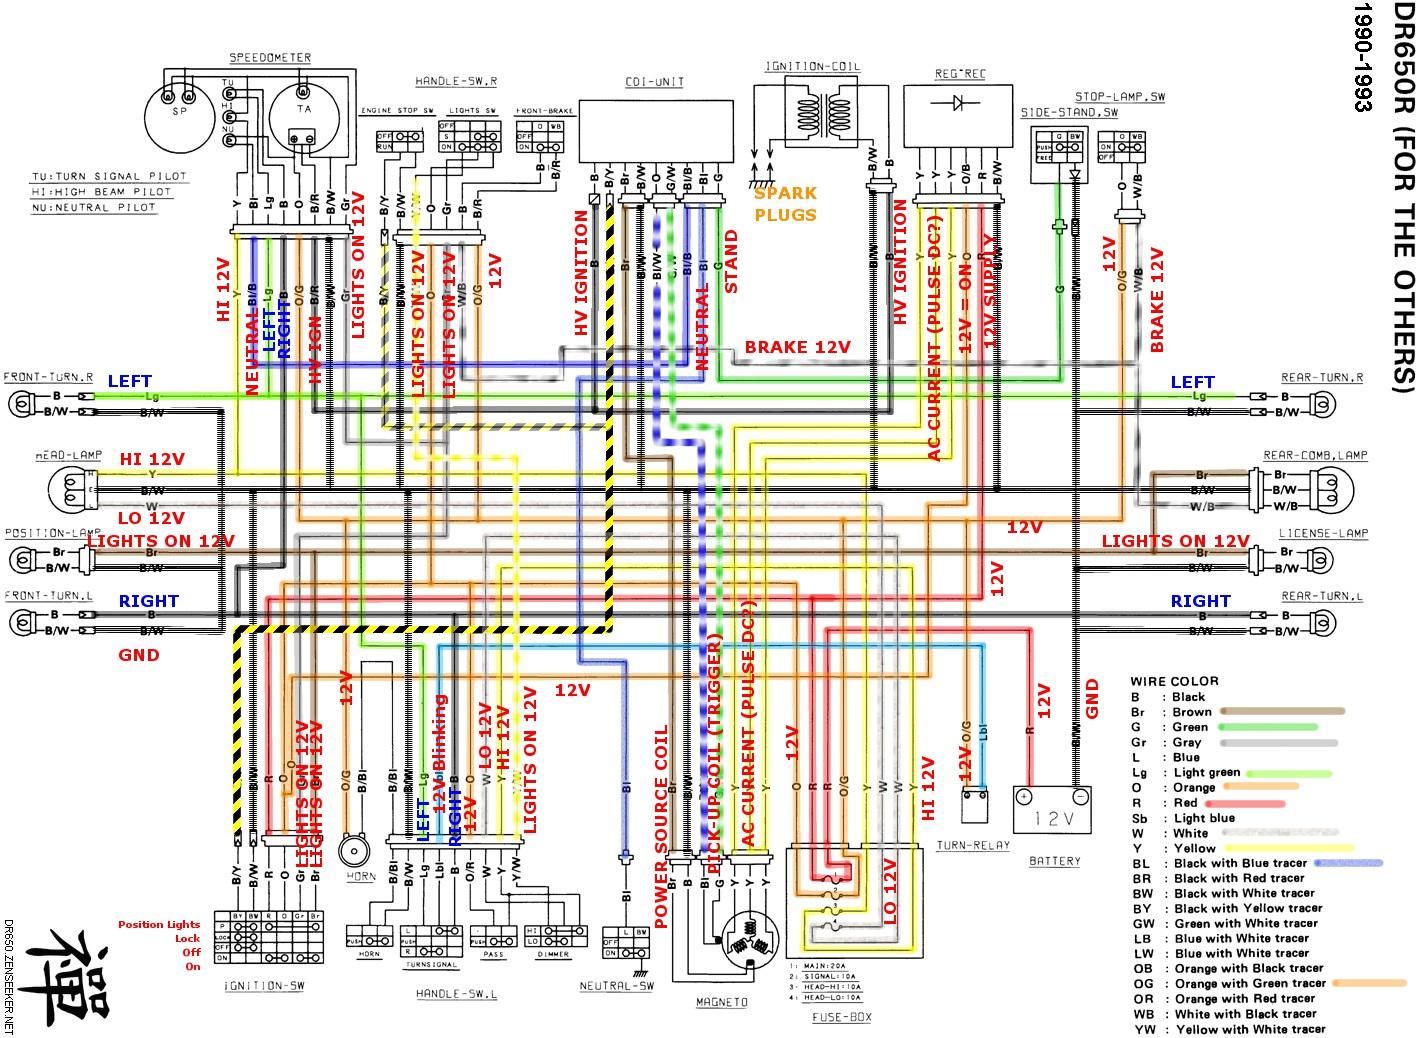 2012 Fiat Fuse Box Diagram Wiring Schematic Library 2007 Ford Focus Schedule Suzuki Dr650 Electrical Page